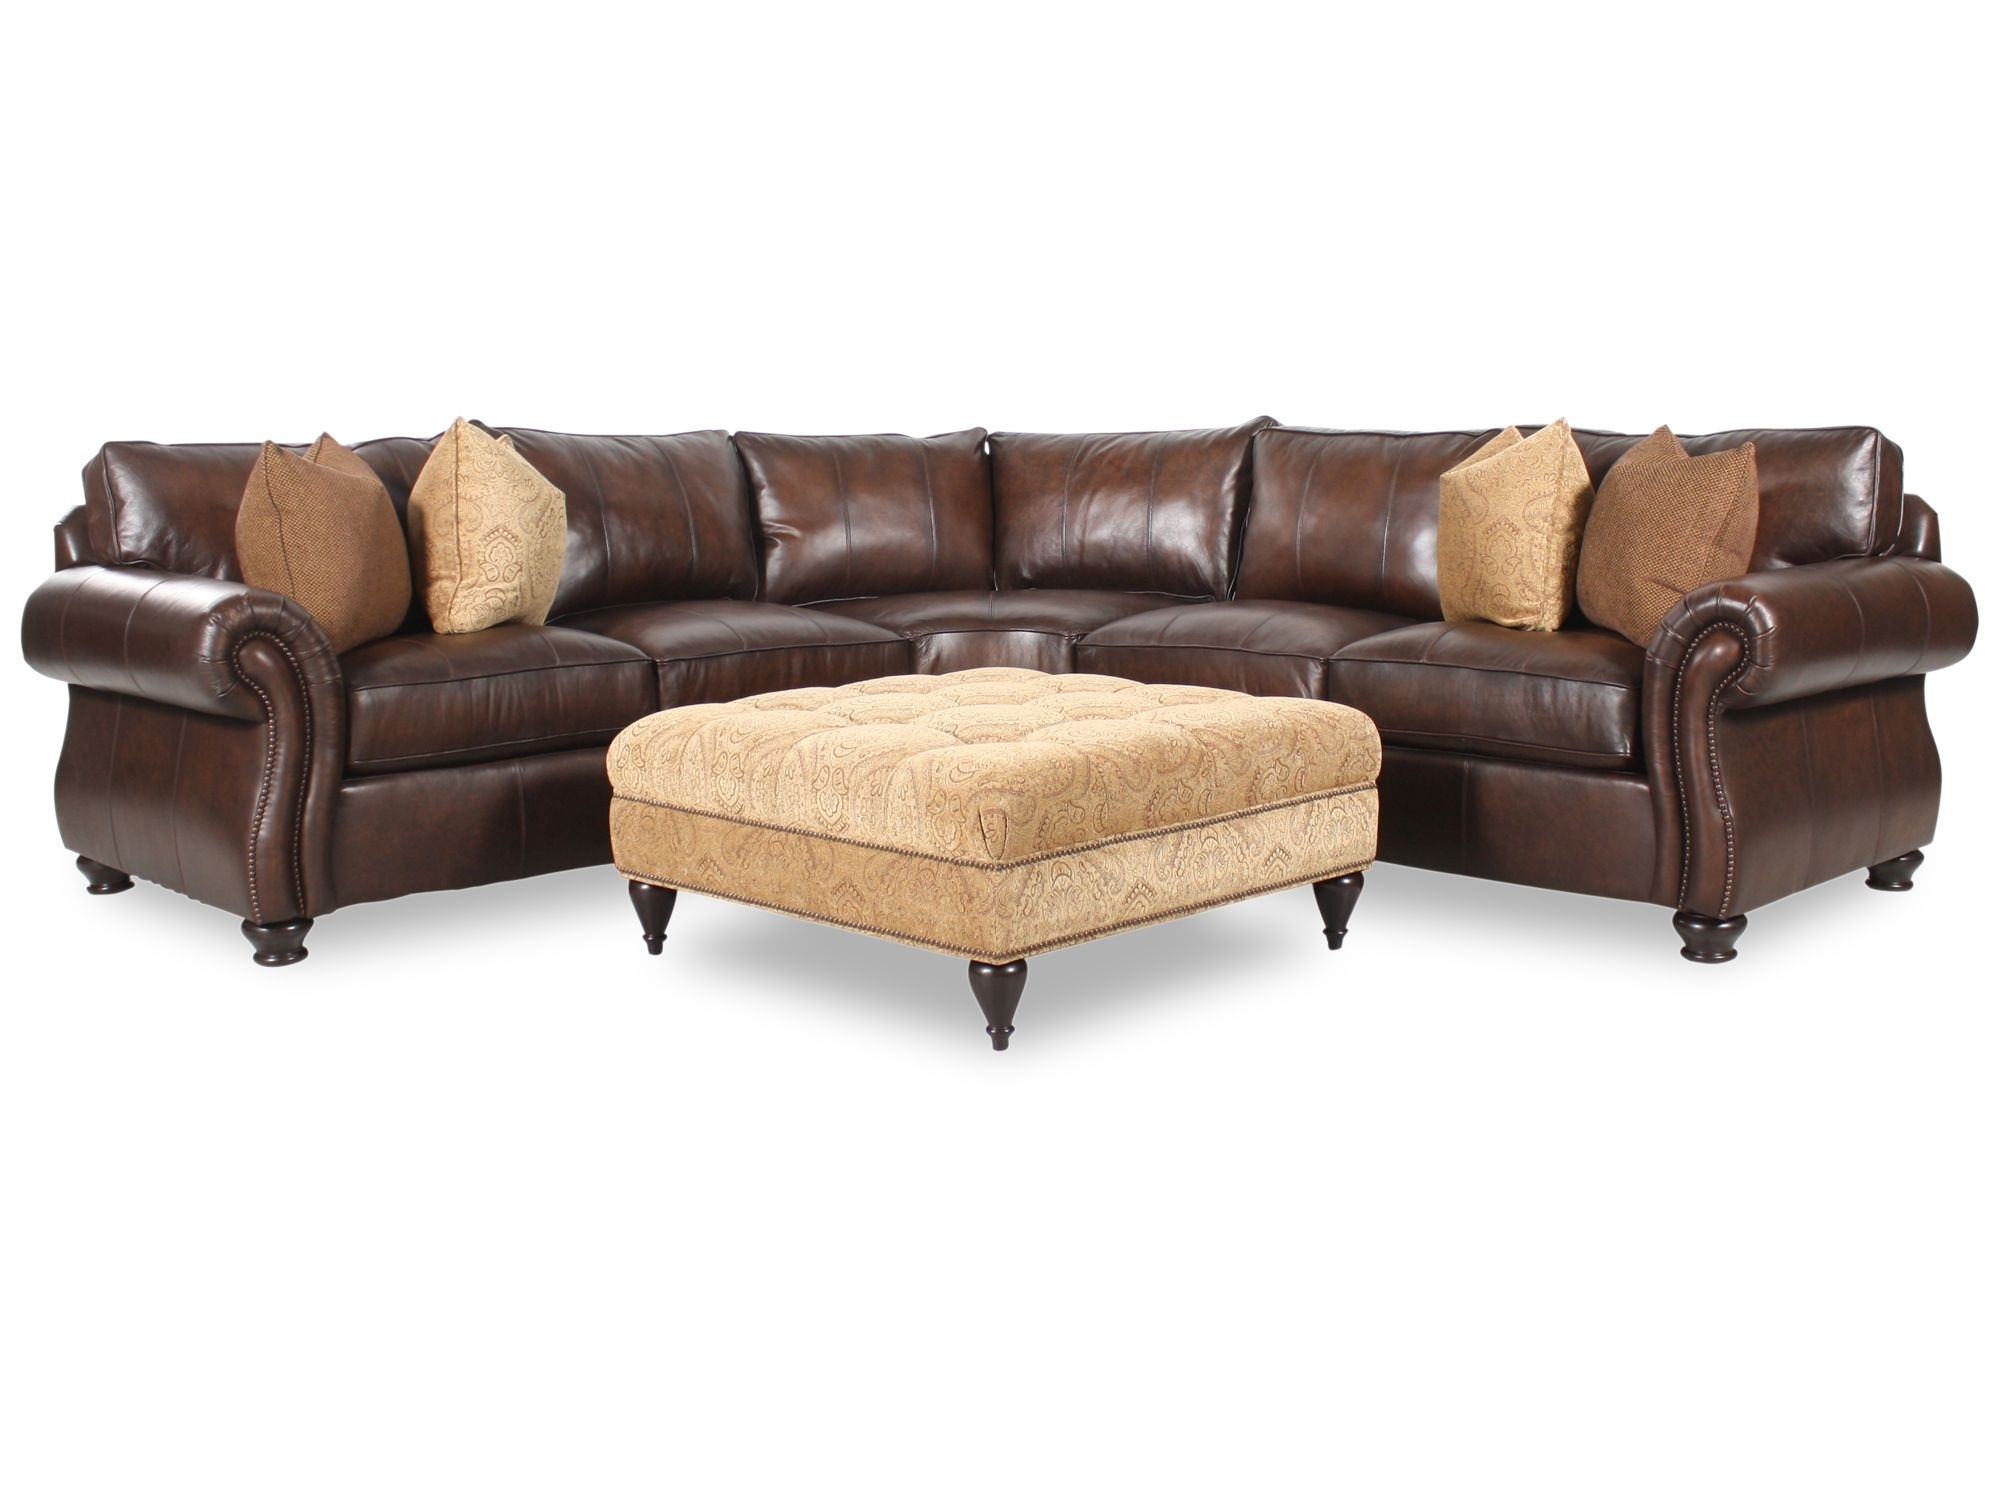 Bernhardt Van Gogh Two Piece Leather Sectional With Square Fabric Throughout Leather Sectional Sofas With Ottoman (View 10 of 10)